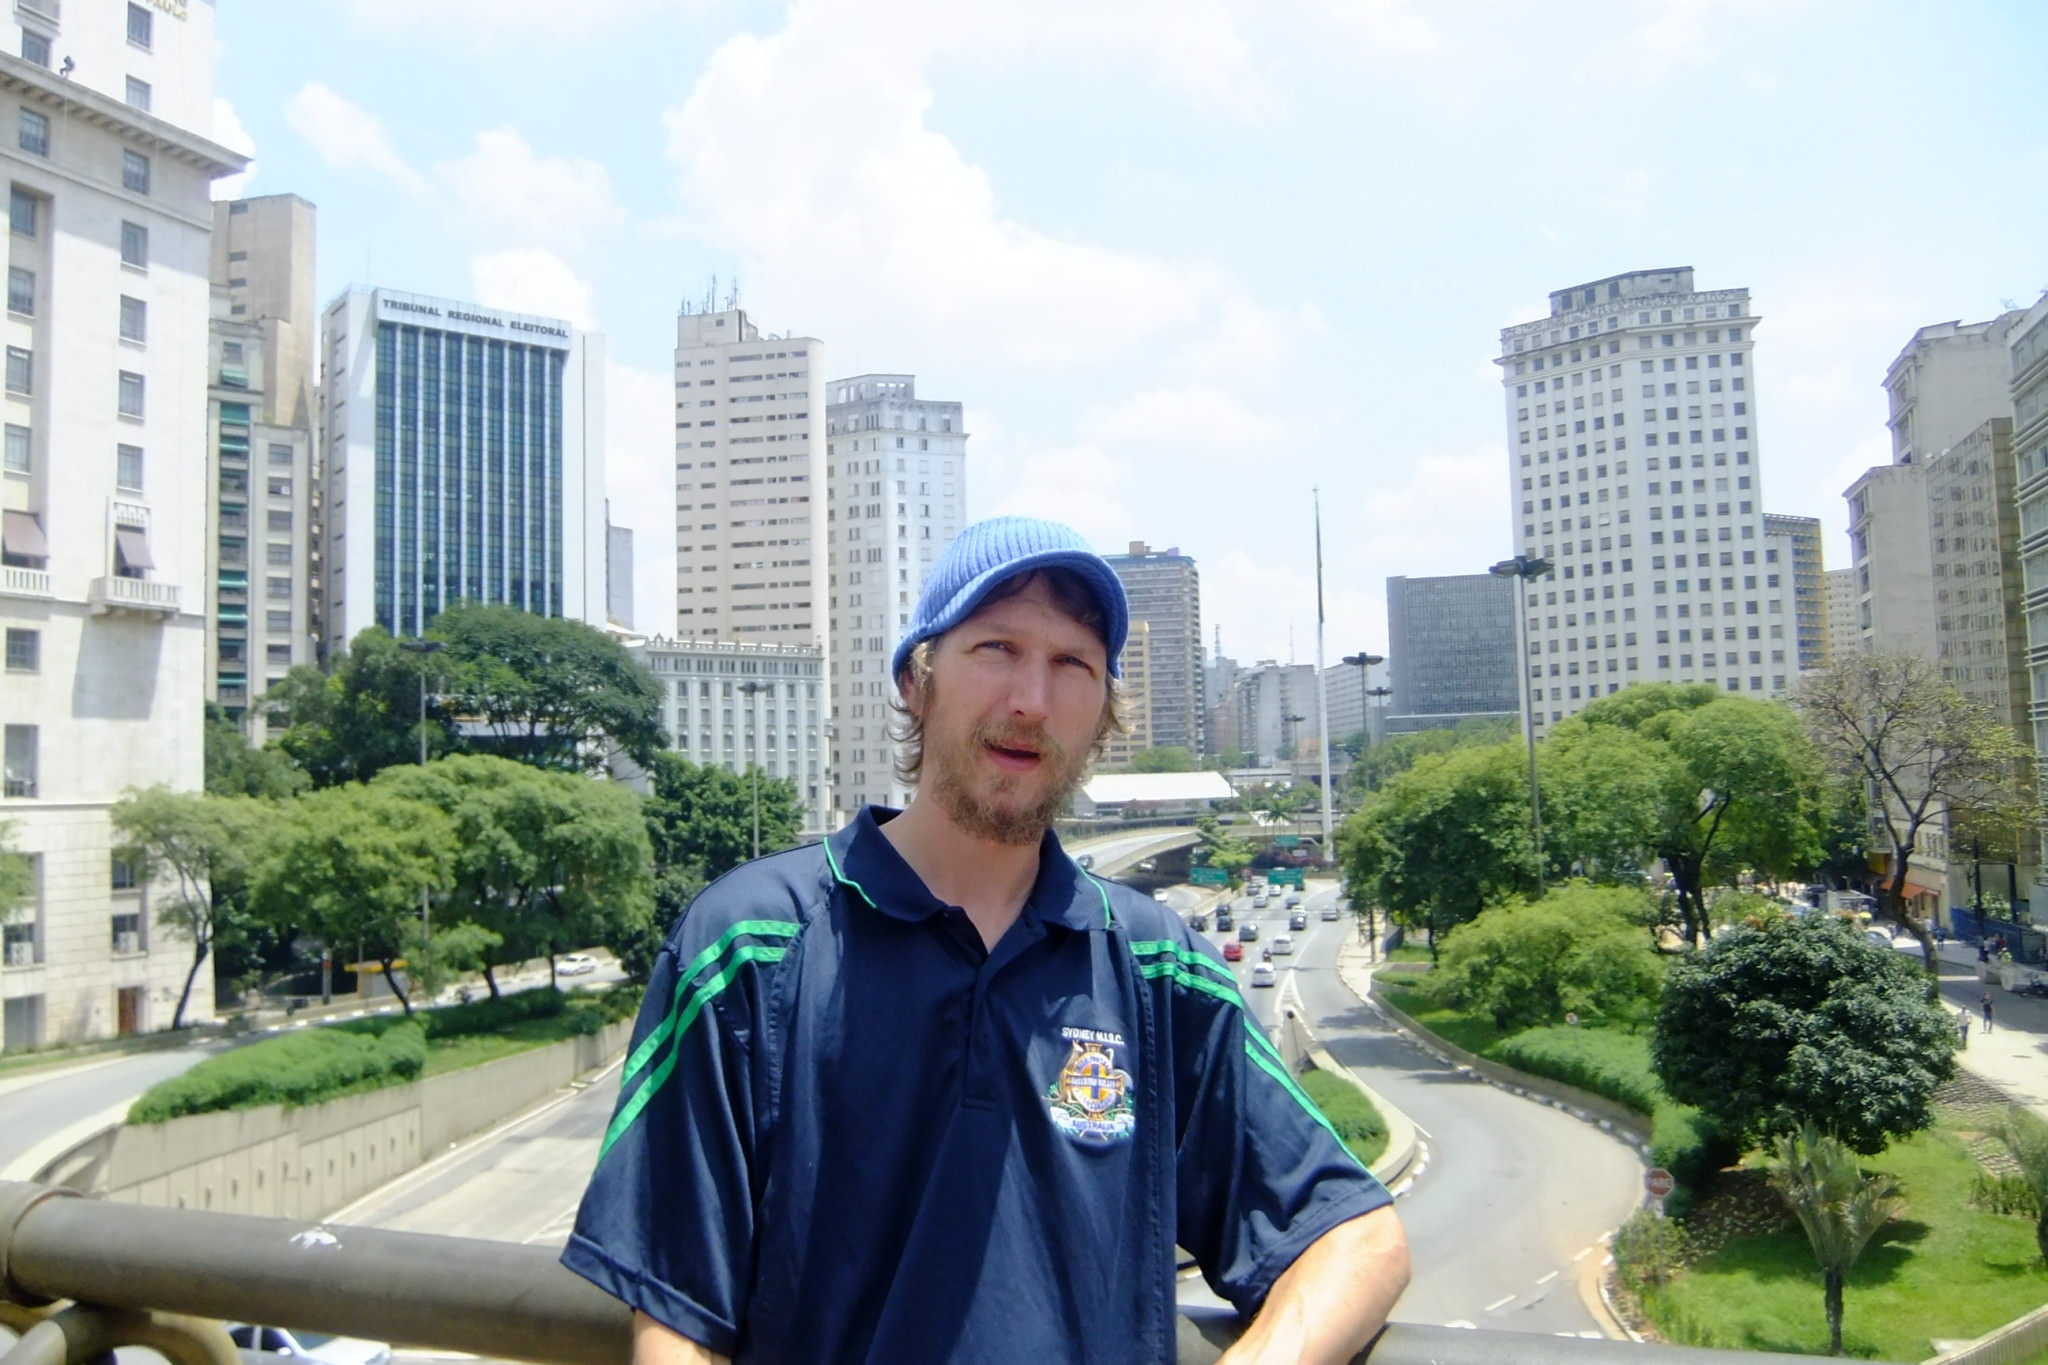 Jonny Blair in downtown Sao Paulo in Brazil - a lifestyle of travel